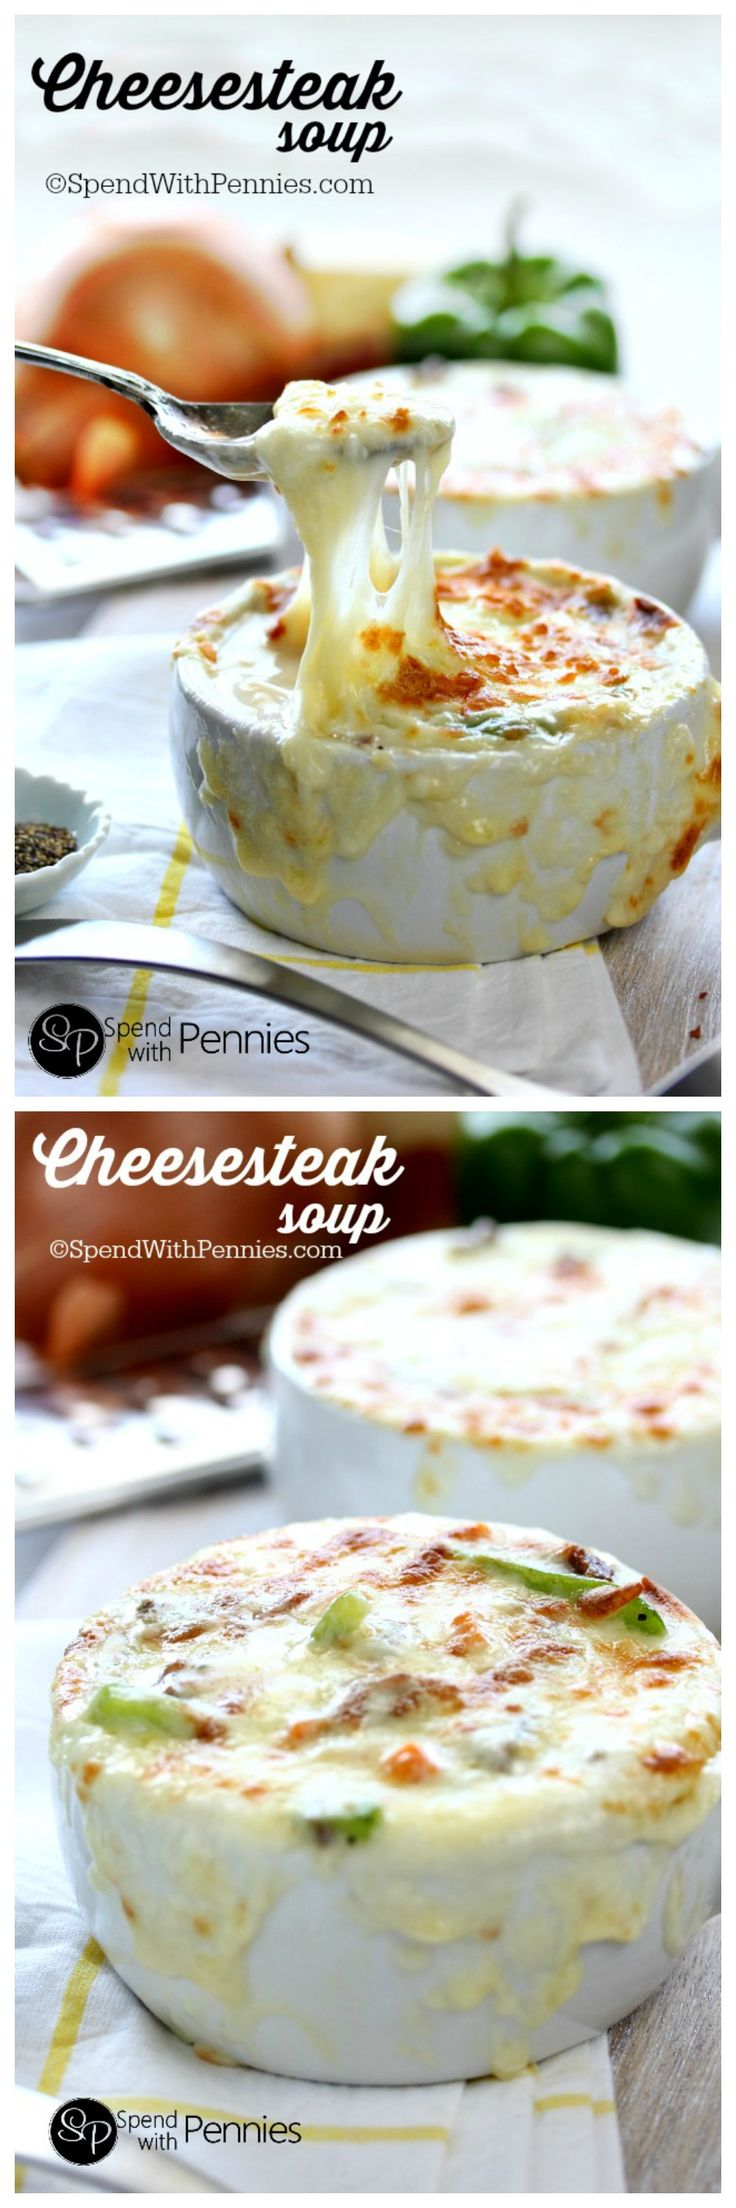 Baked Cheesesteak Soup! Loaded with beef, peppers and cheese this creamy cheesy soup recipe is a great twi